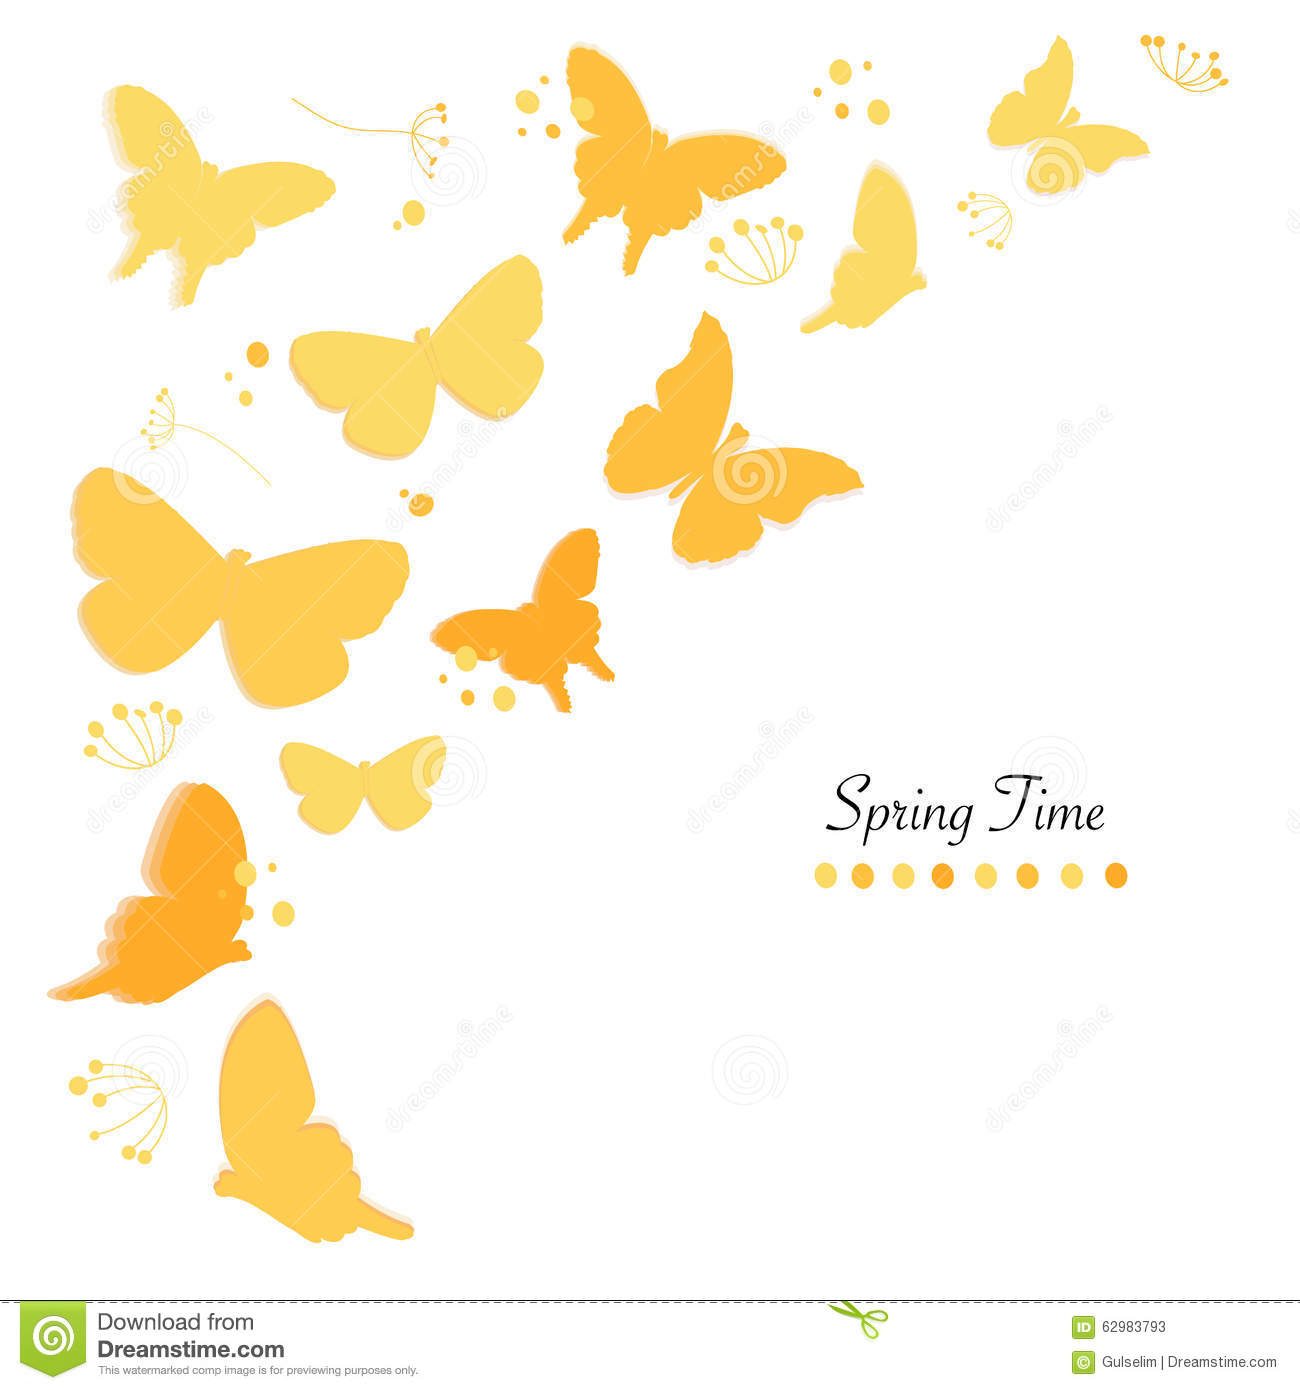 ... Time Greeting Card Vector Background Stock Vector - Image: 62983793